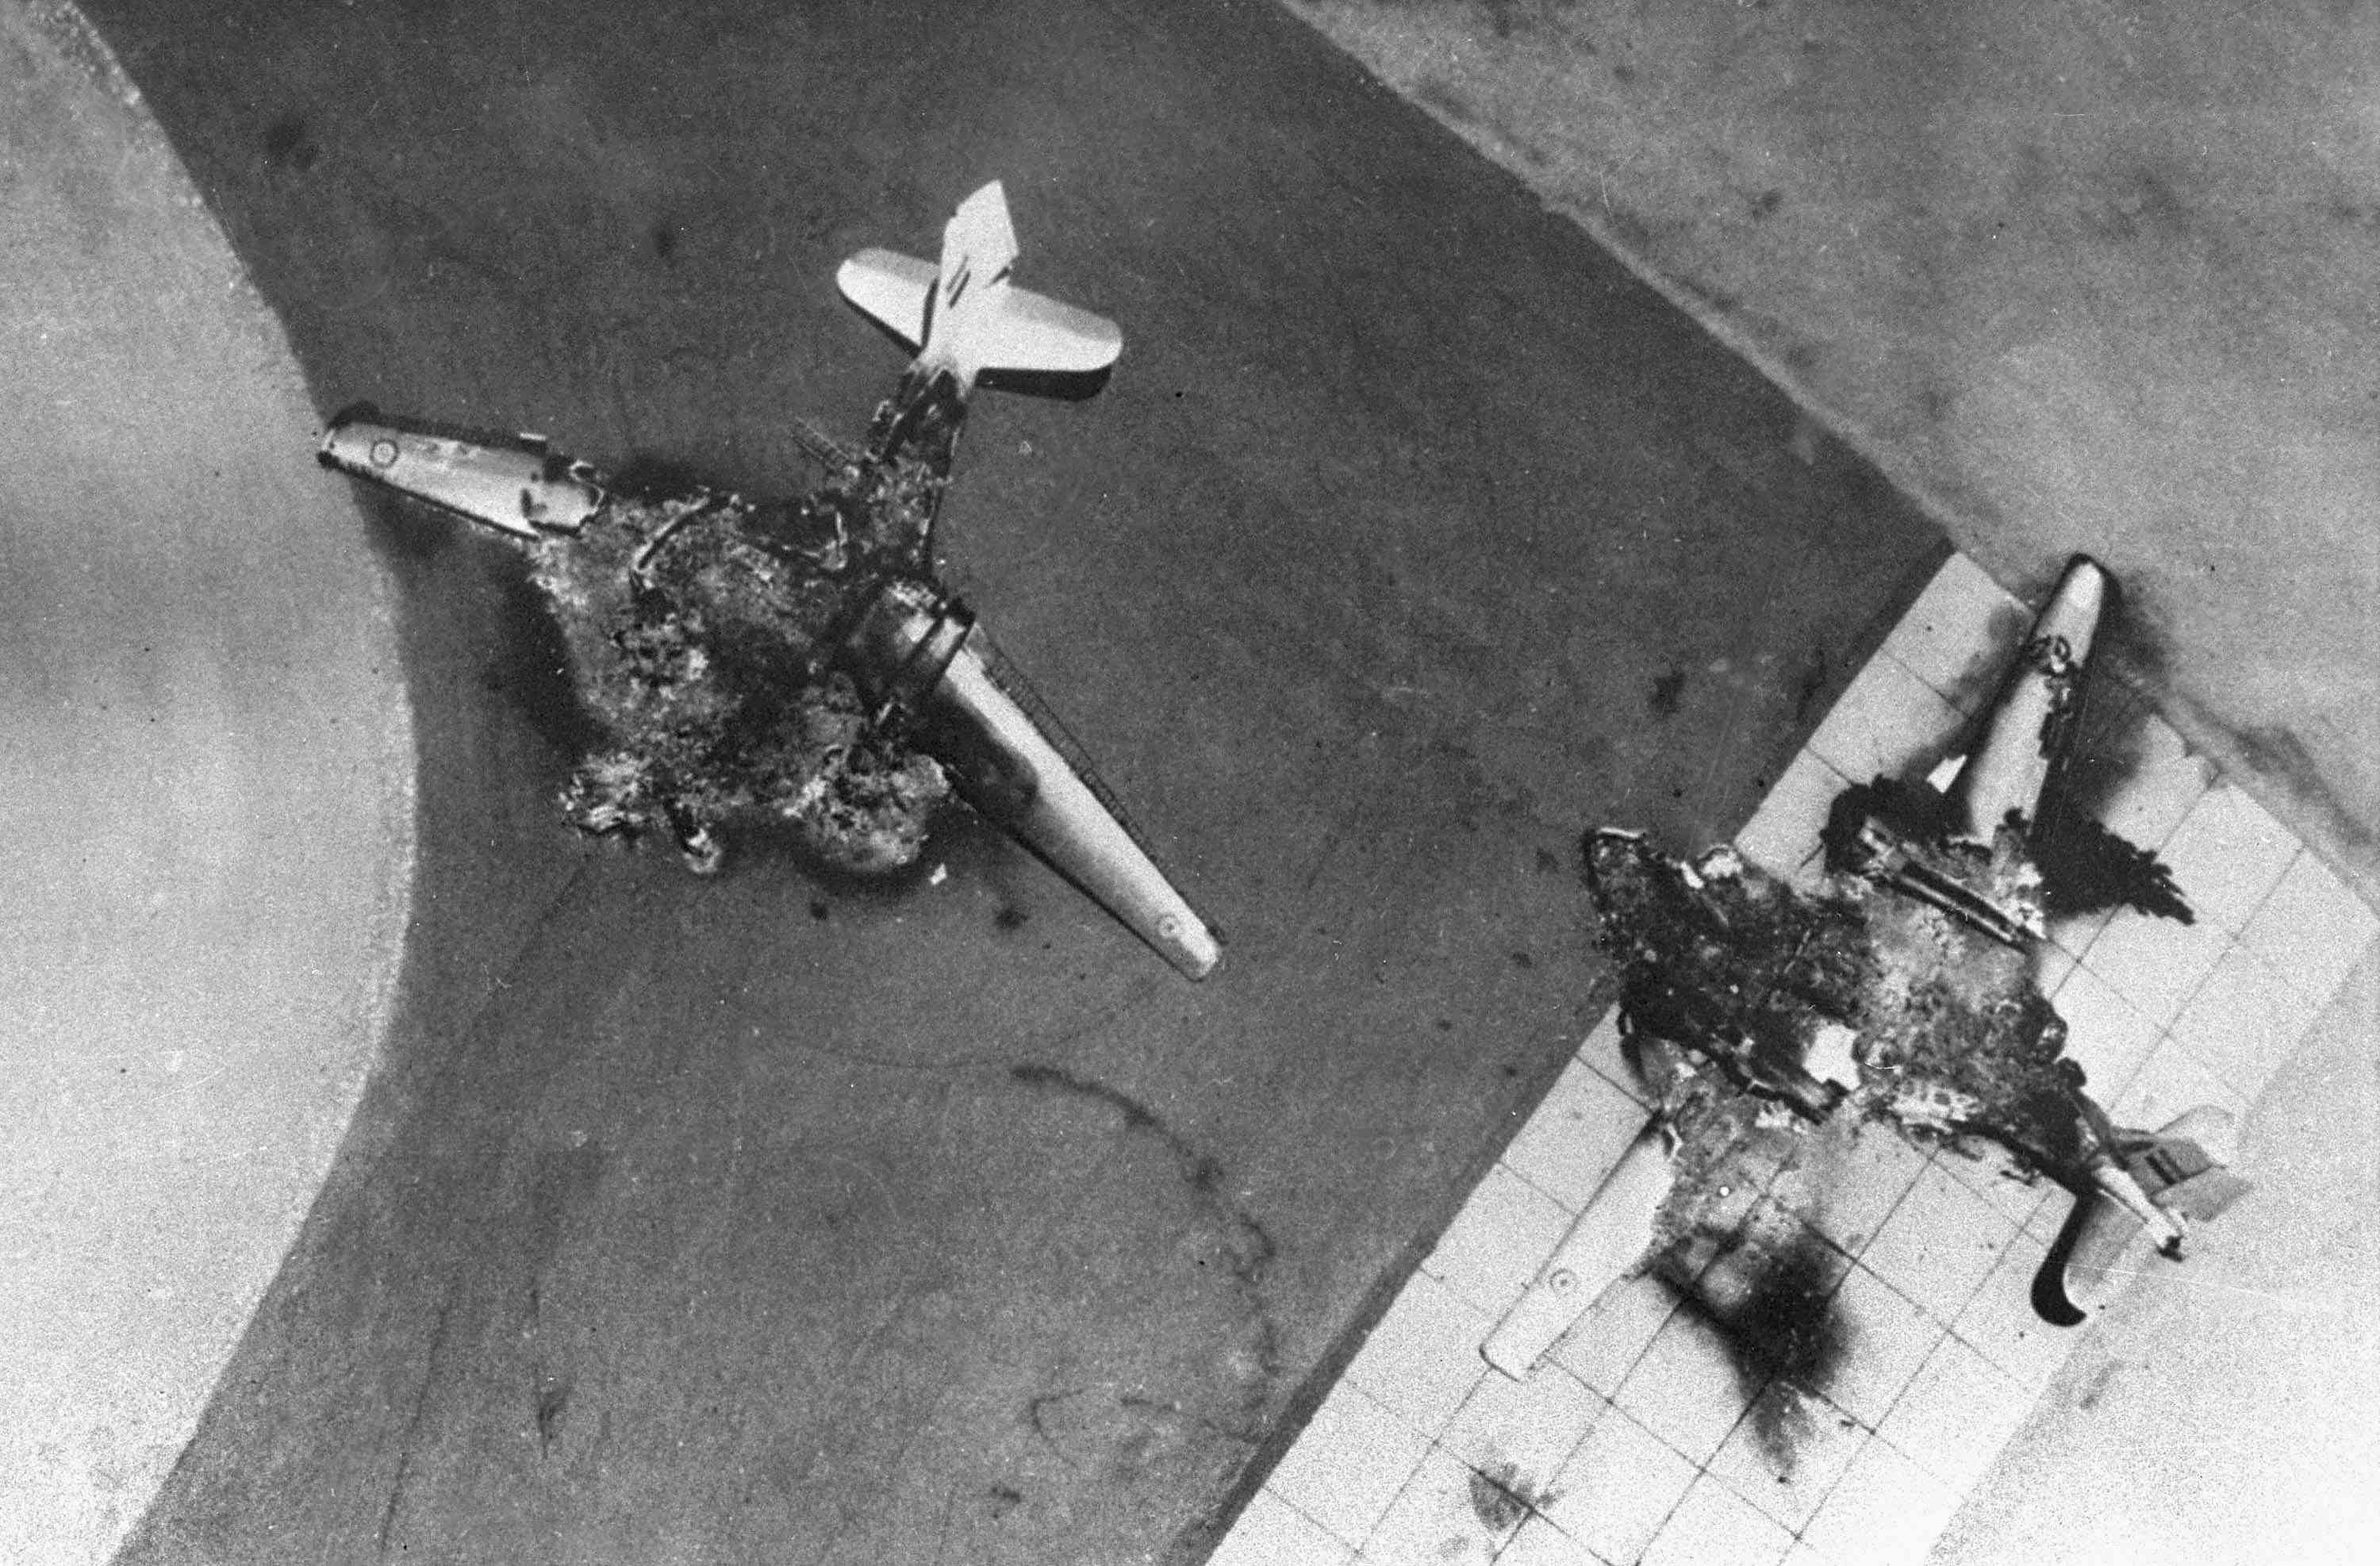 Egyptian jets destroyed on their runways in the Six-Day War.